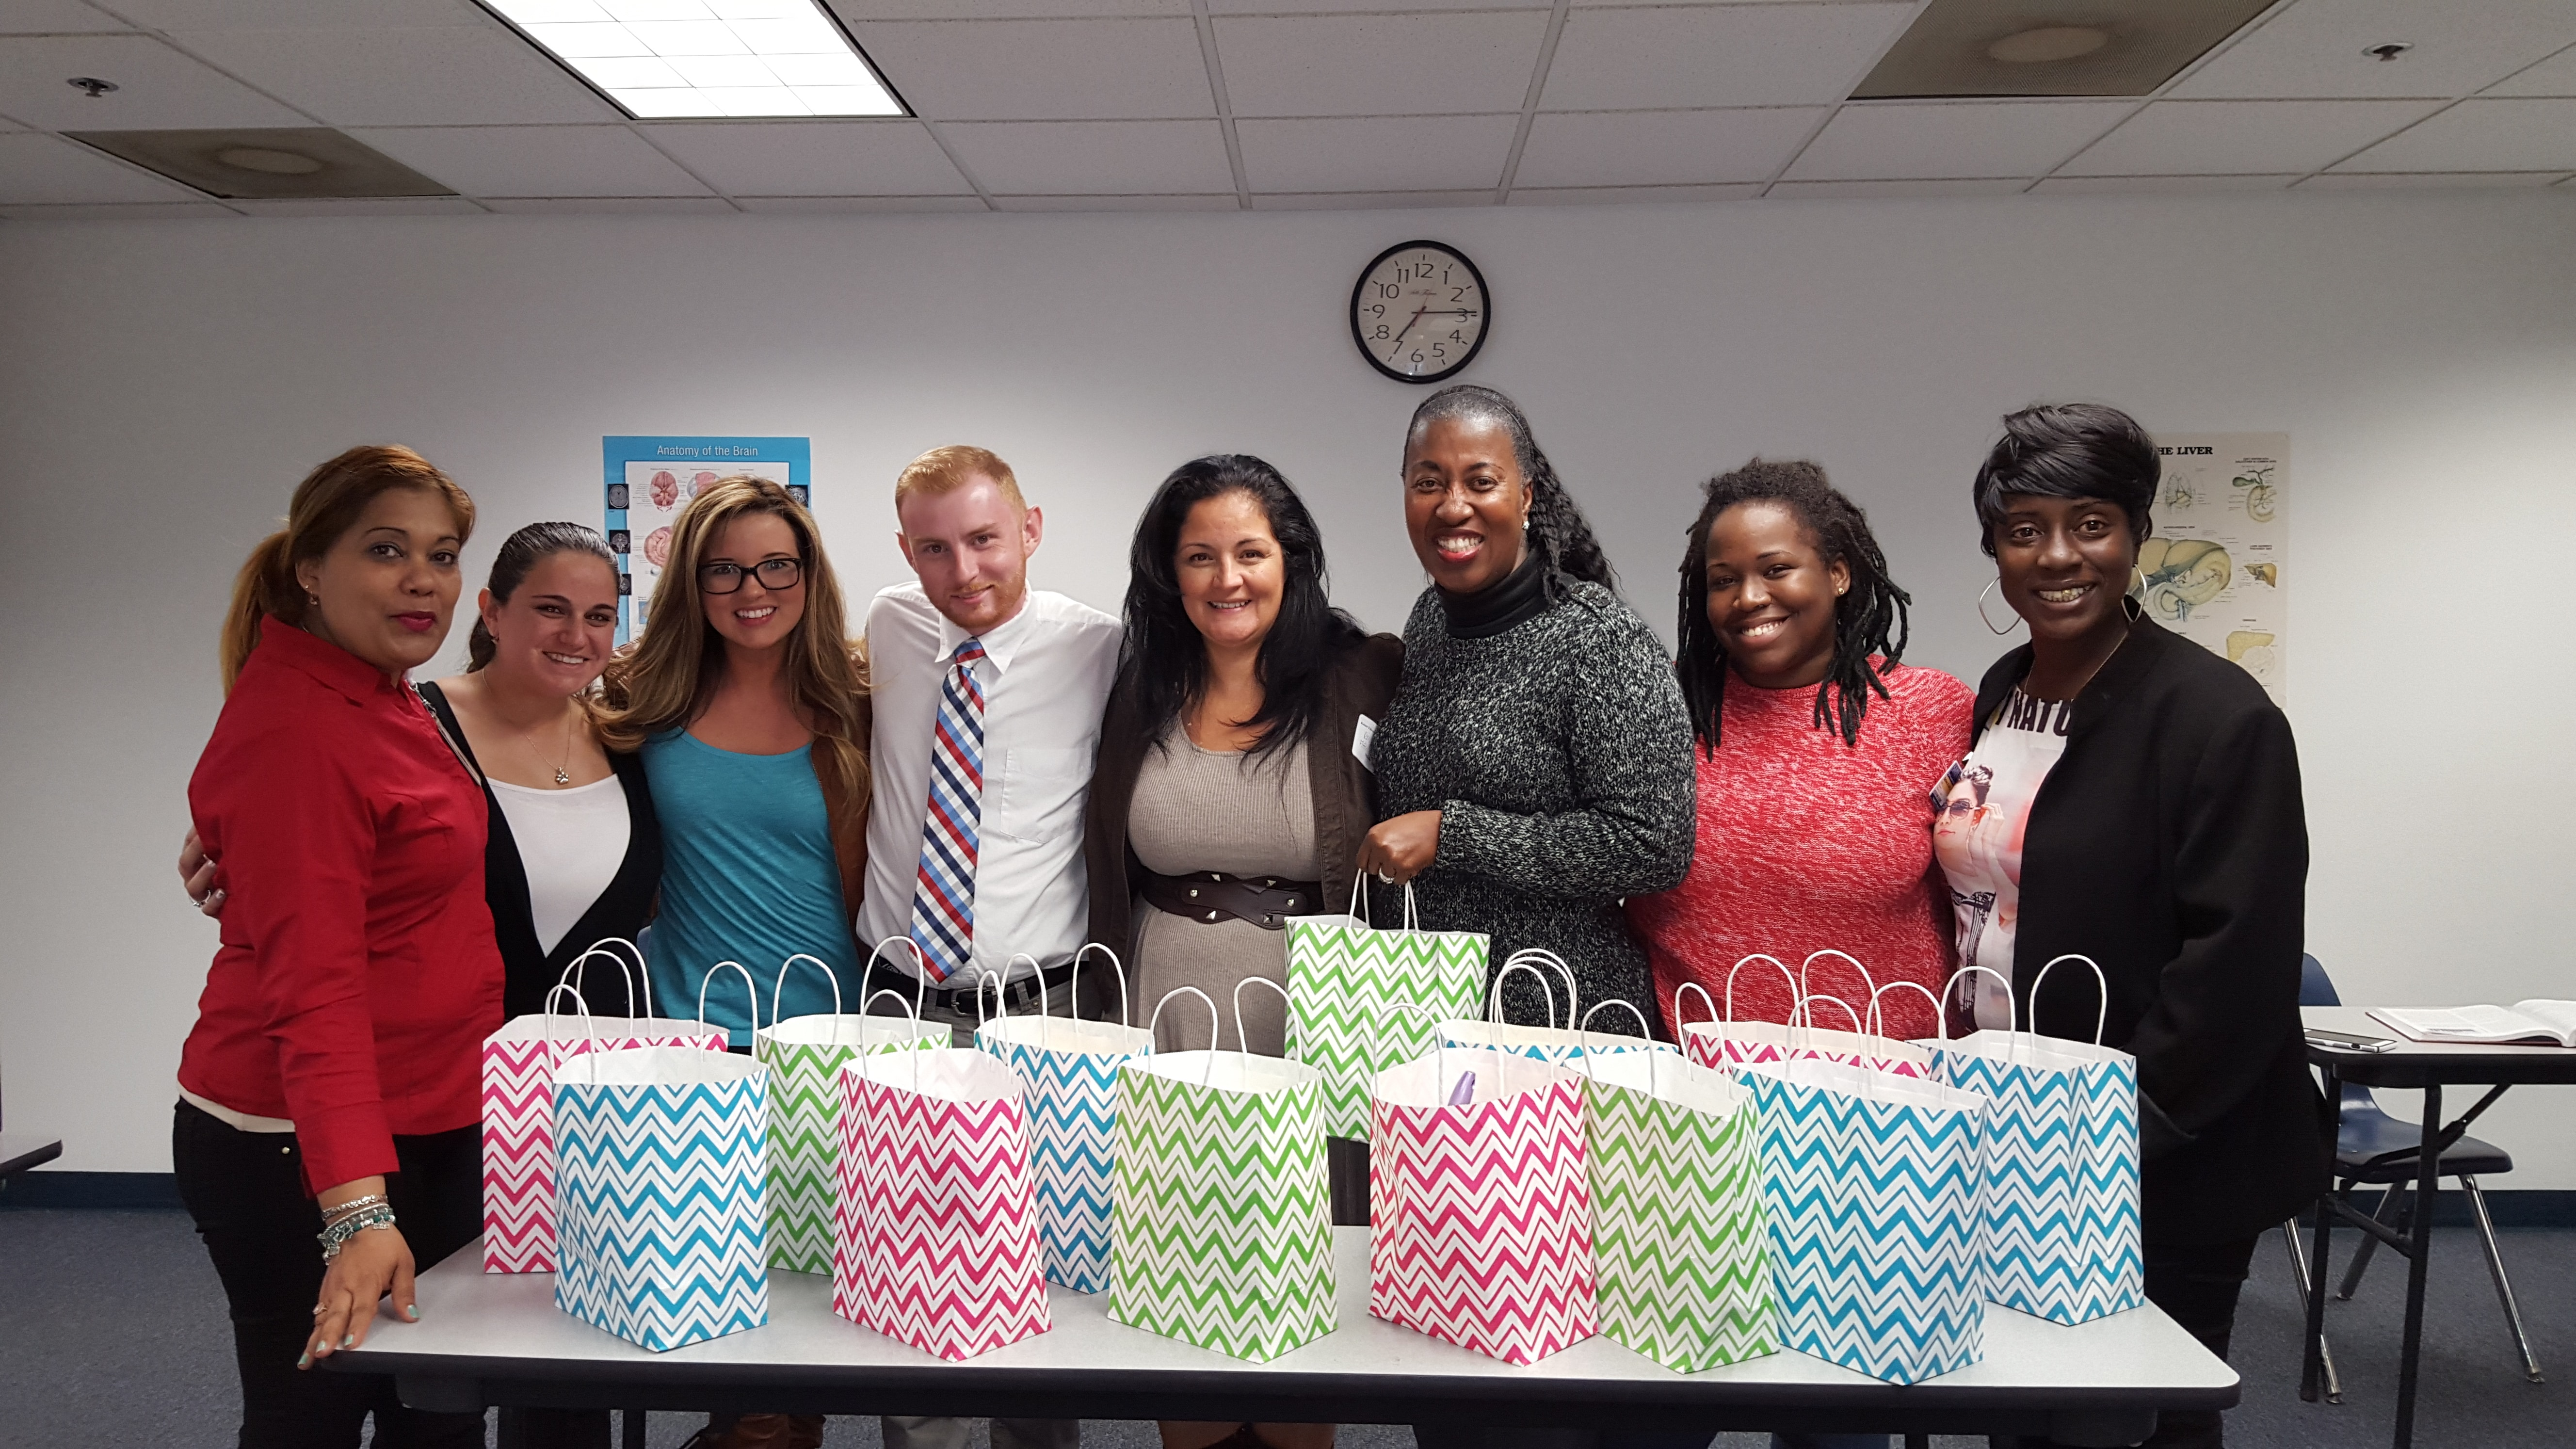 Ft. Lauderdale Psychology Students Make a Donation to the South Florida Wellness Network